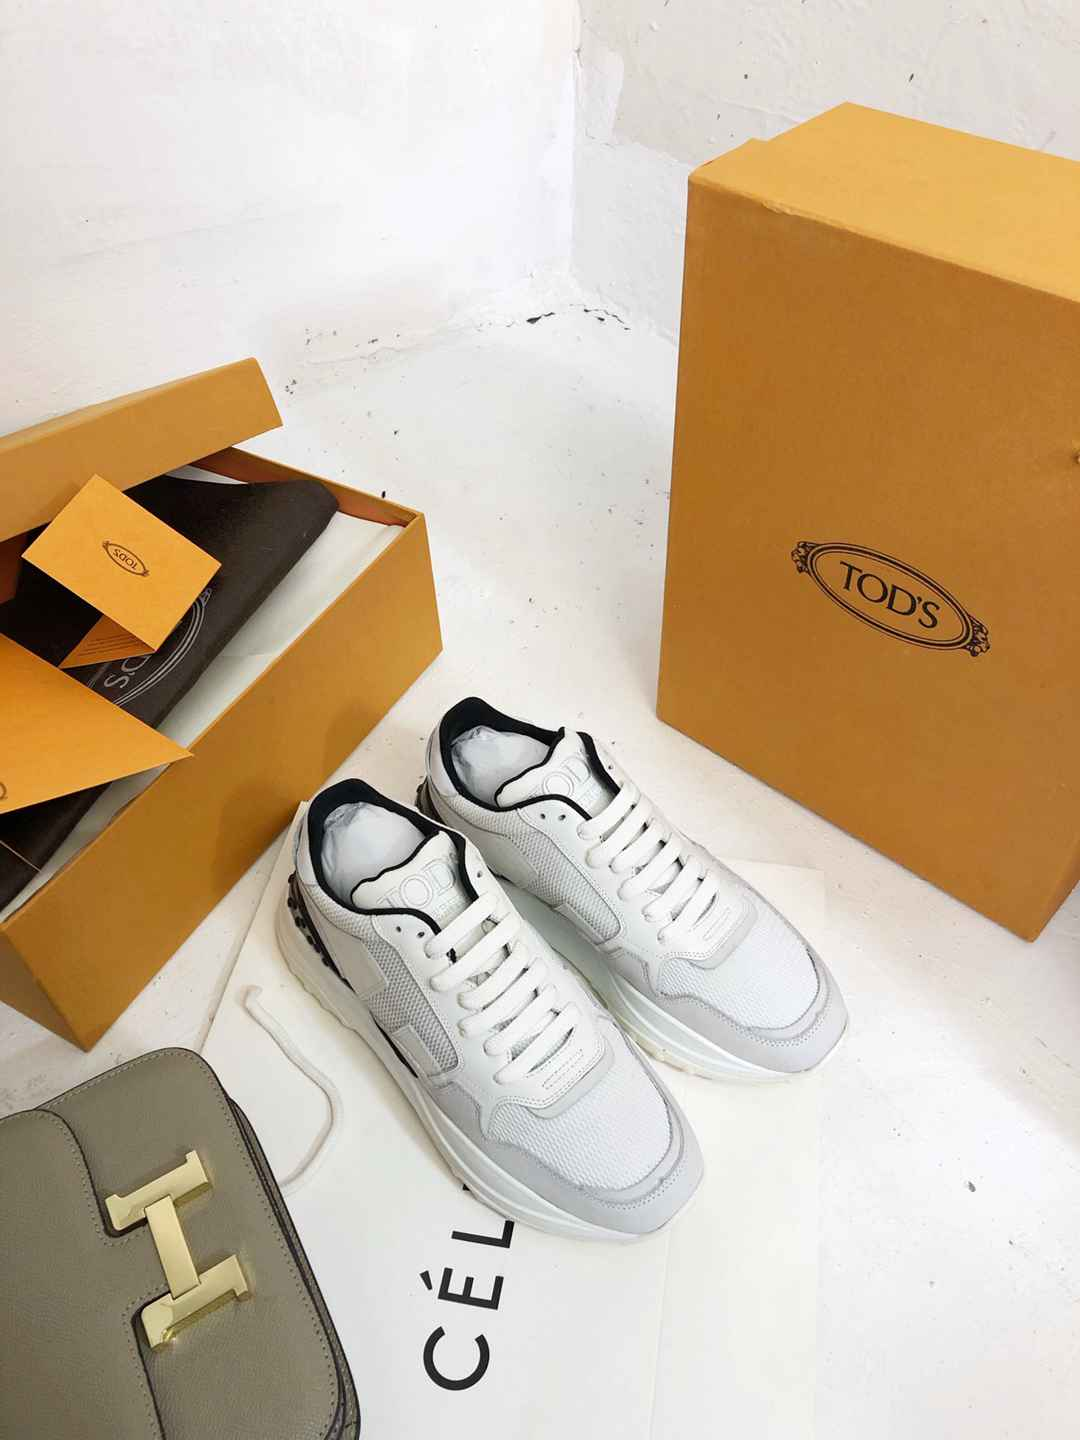 Replica  High Quality Tods Shoes for Women